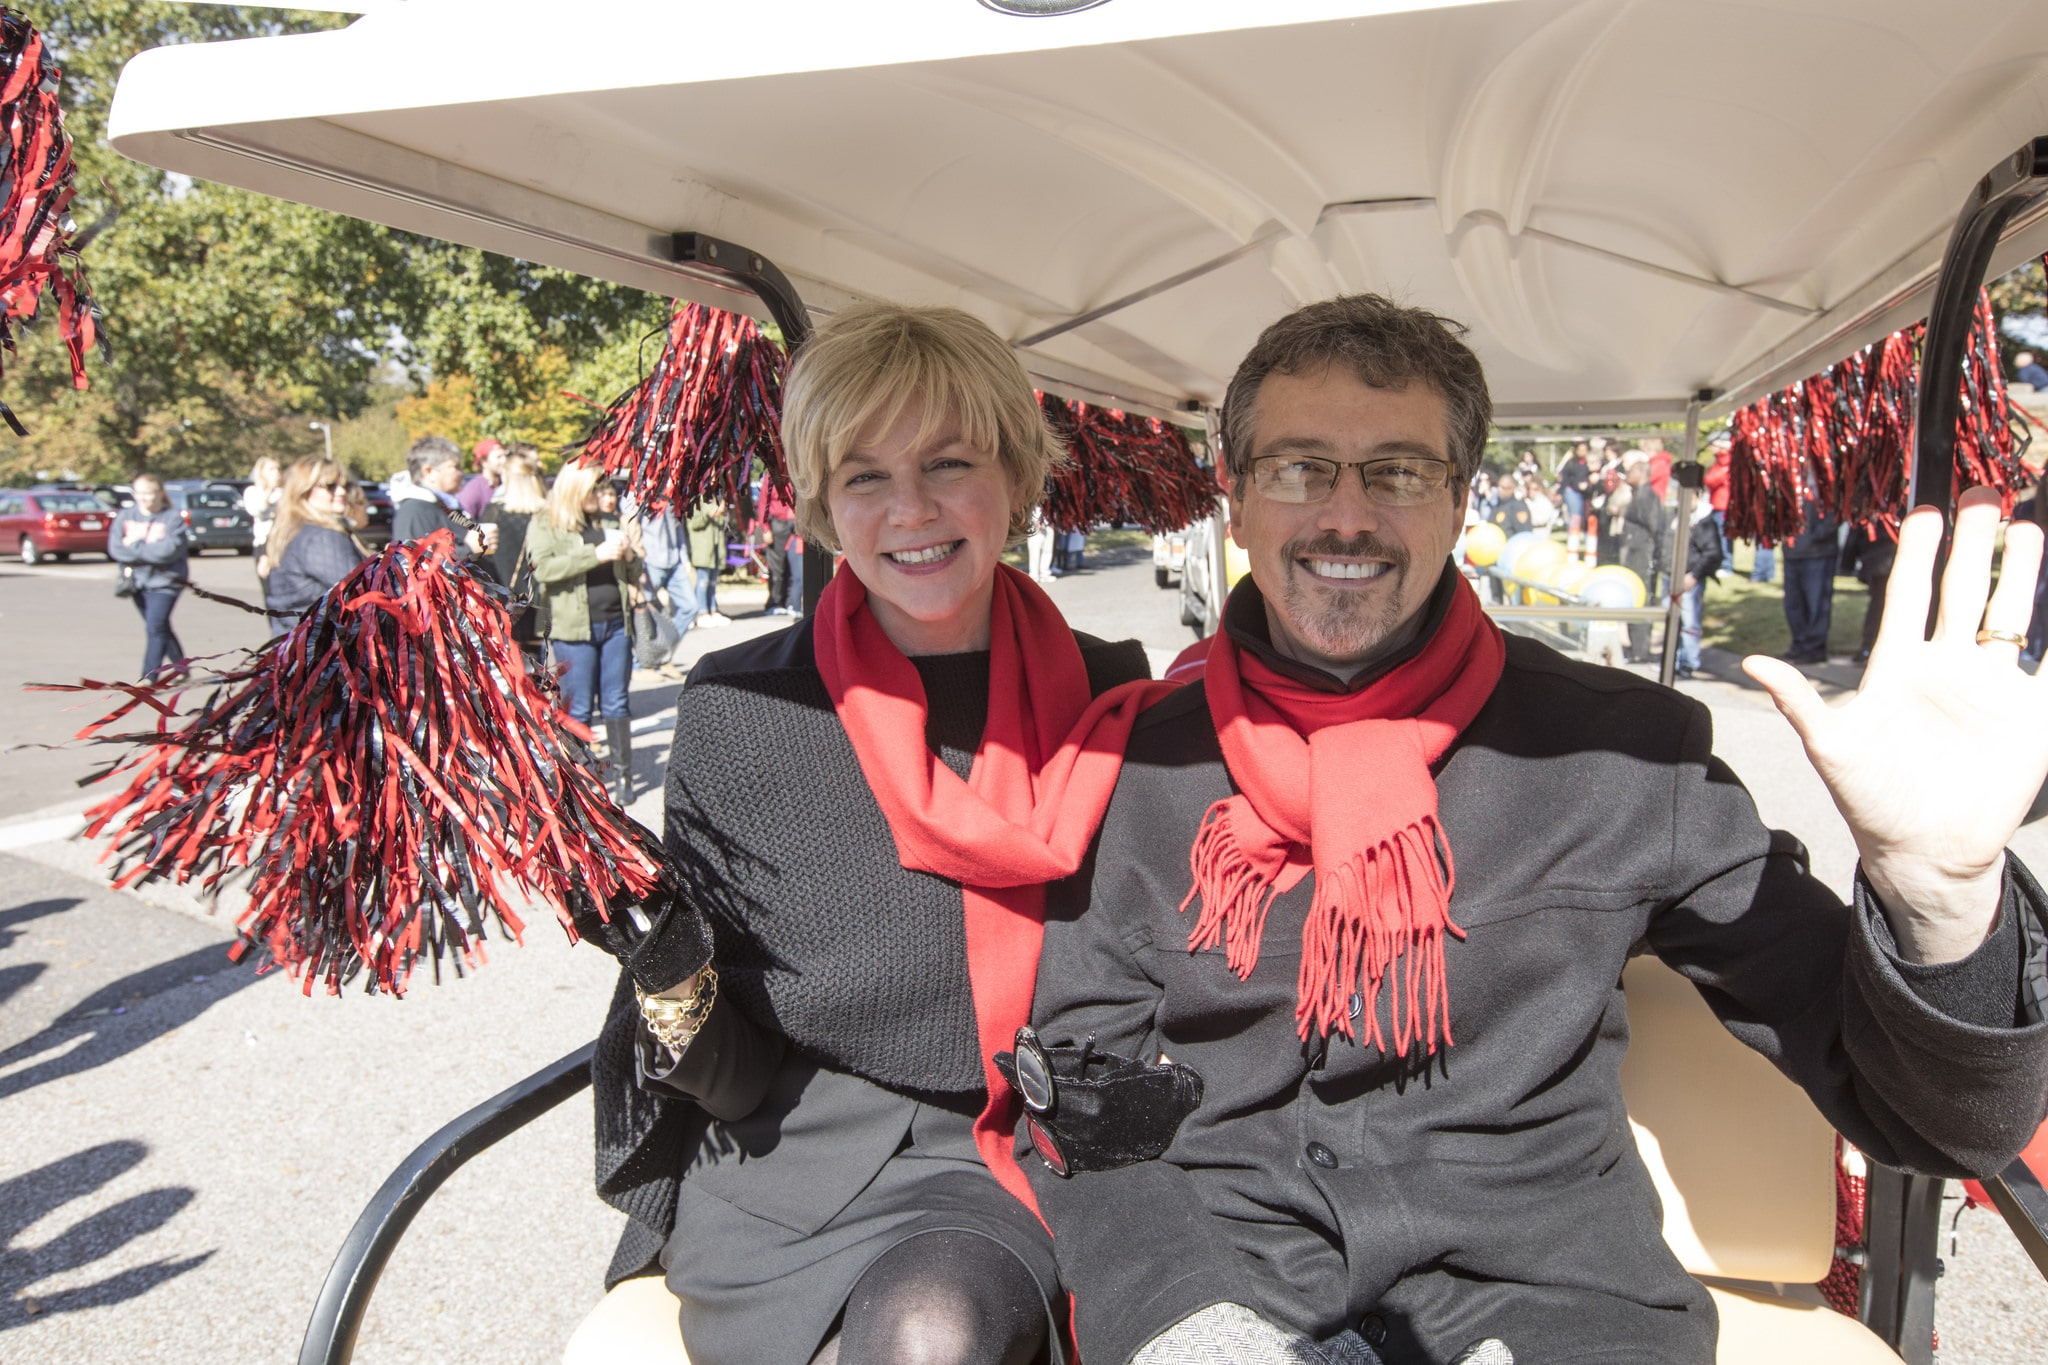 President and Dr. Hass riding in a golf cart, sporting red scarves and waving red and black moms